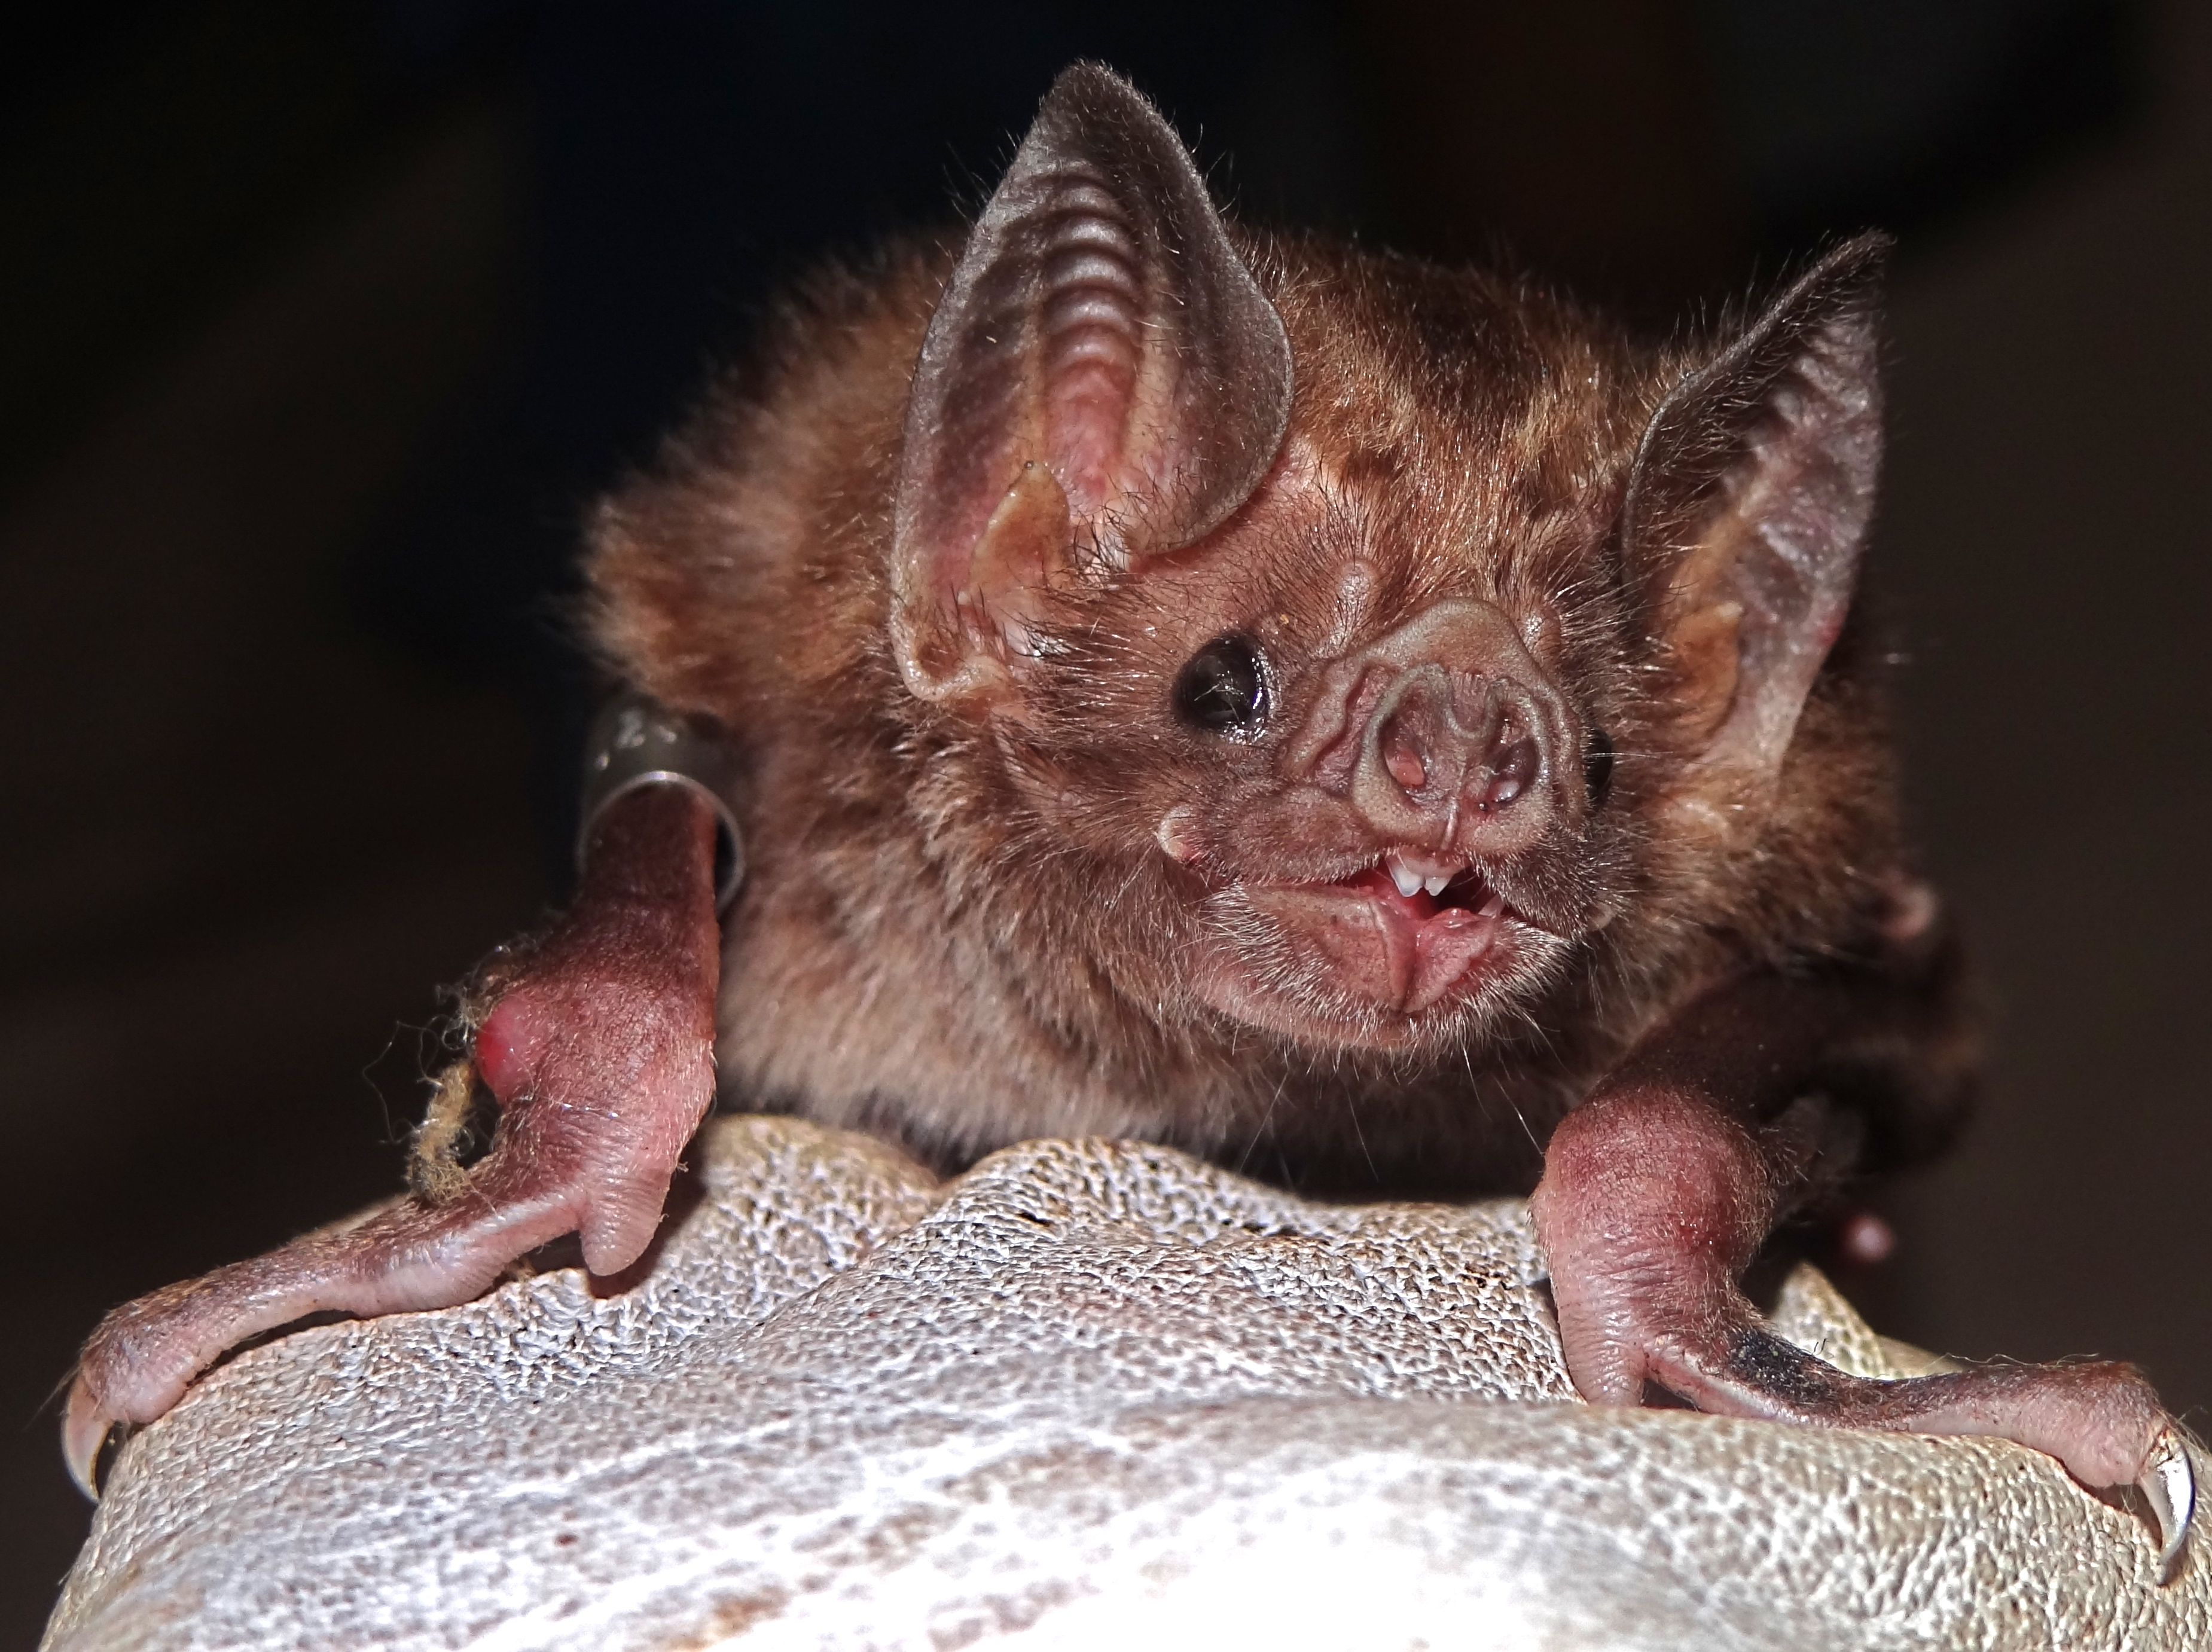 Culling Vampire Bats To Stem Rabies In Latin America Can